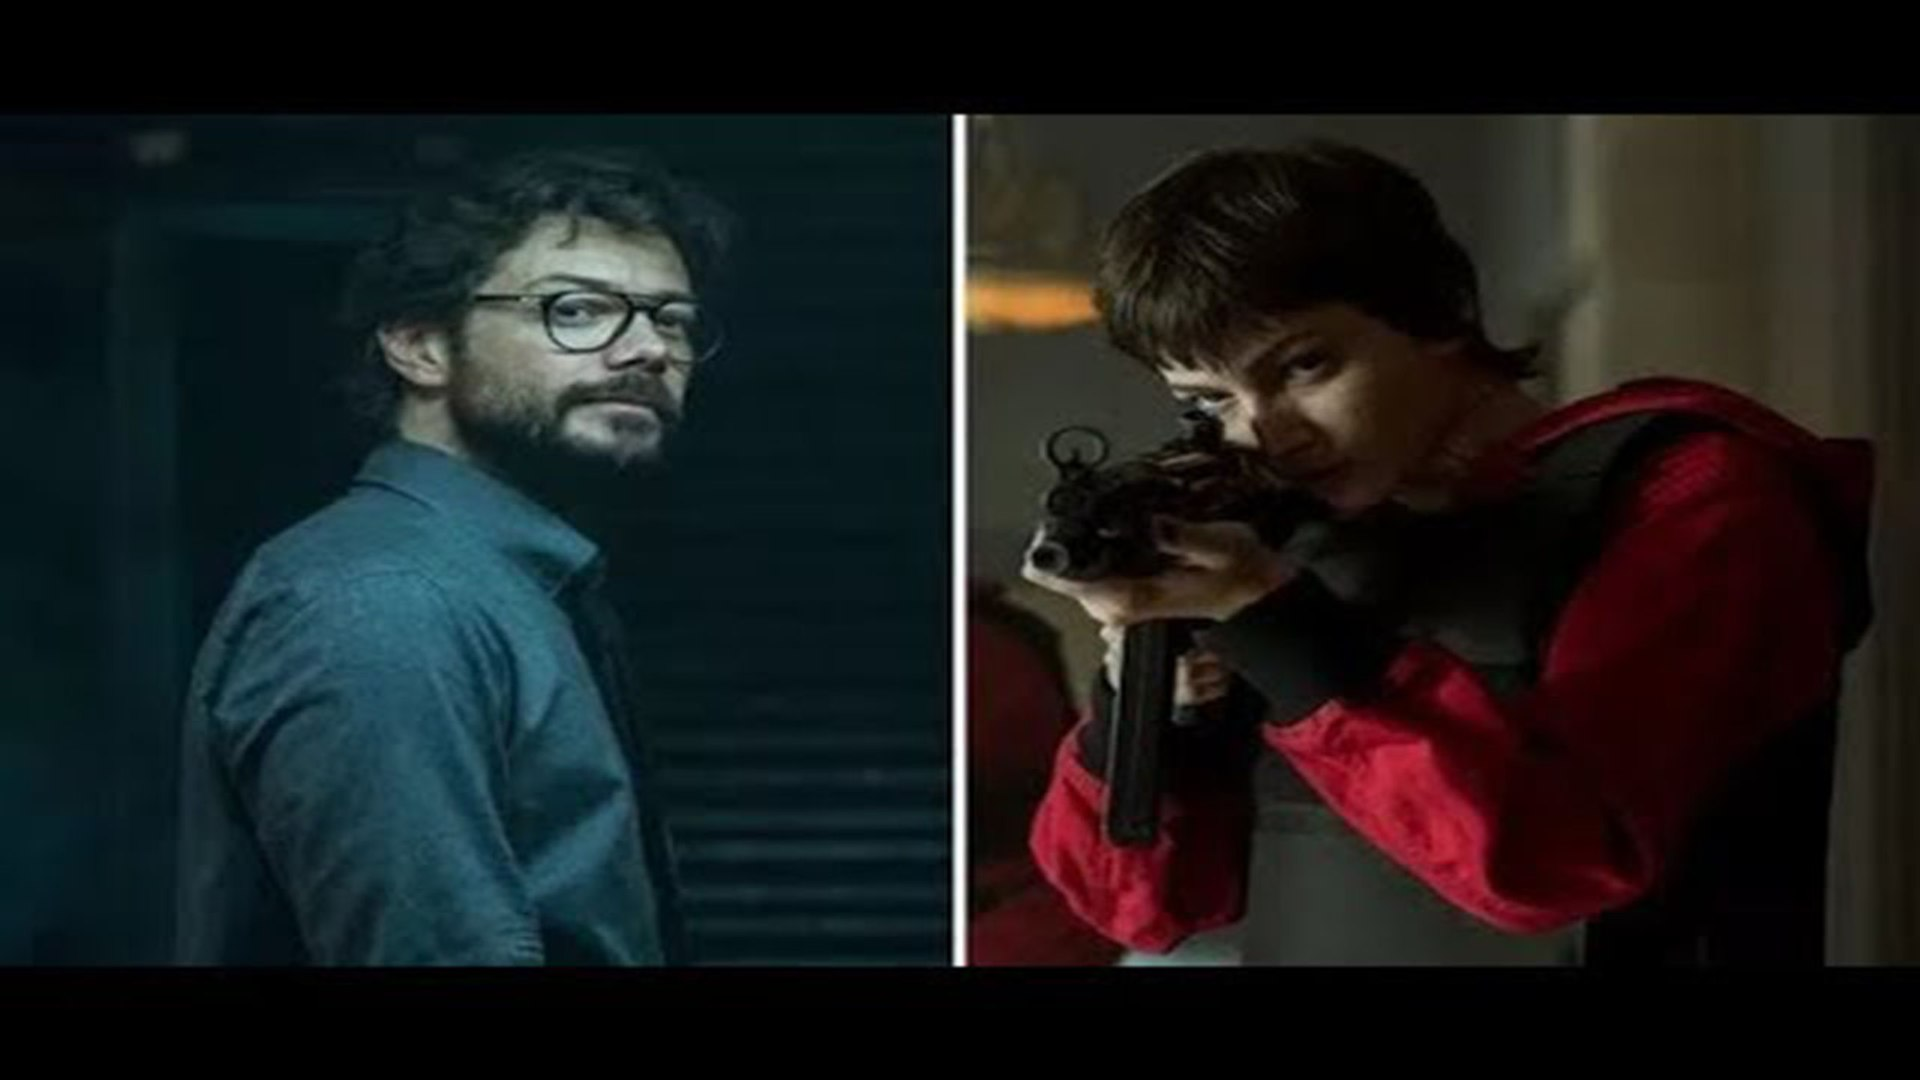 Money Heist season 5 spoilers: What are the characters' real names?